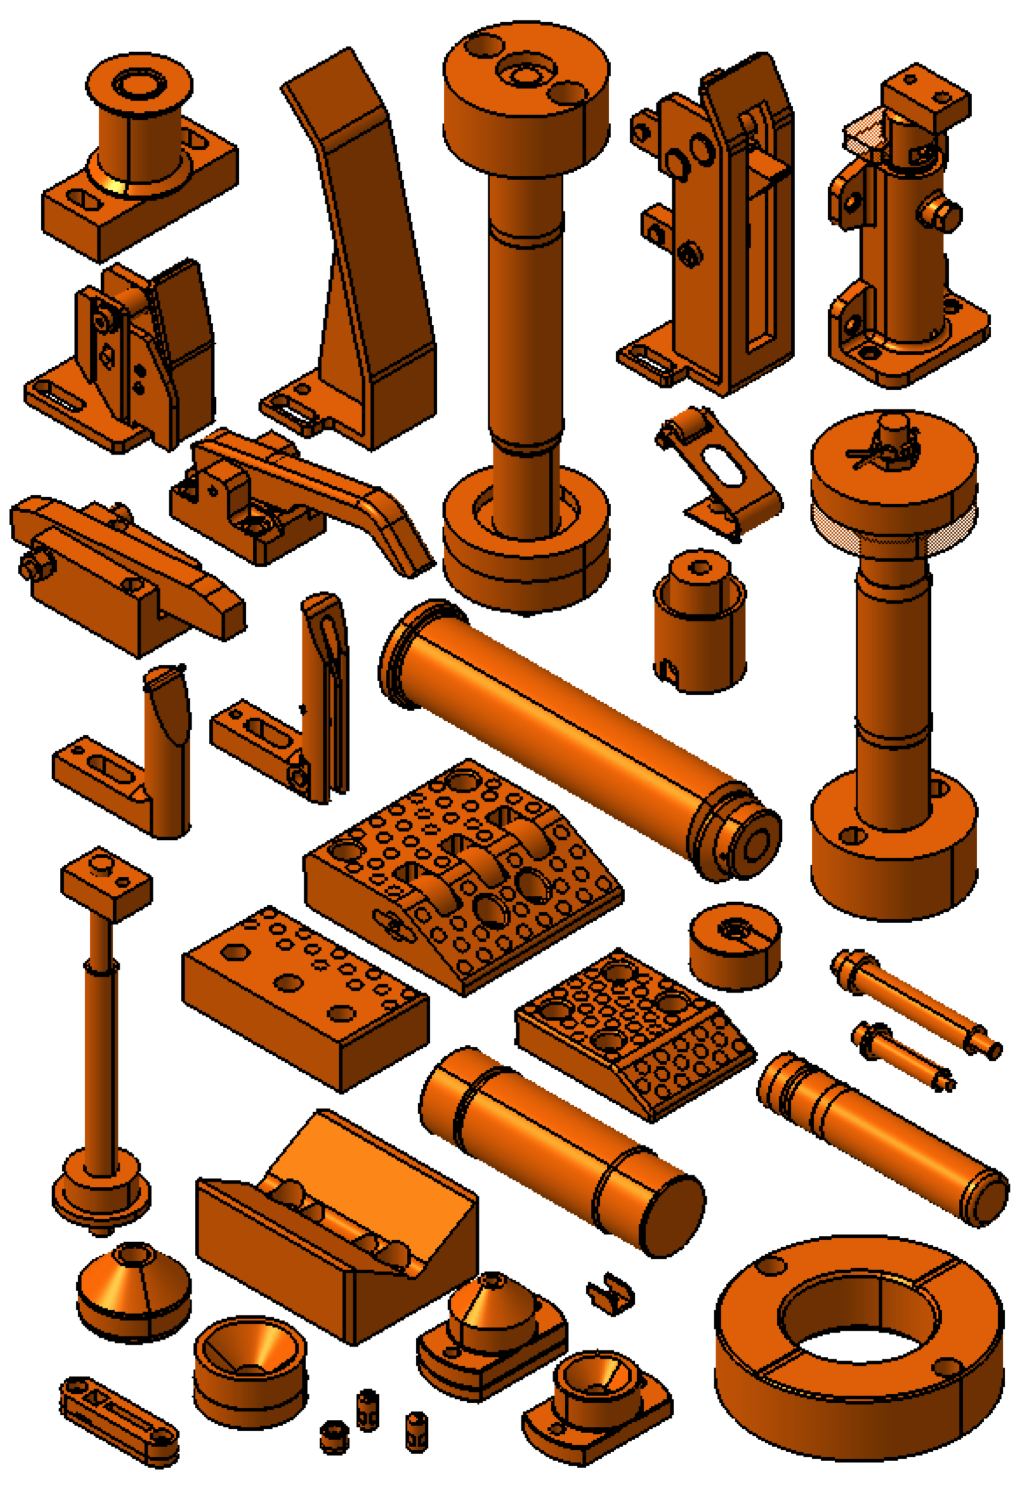 Standard Component for Press Die